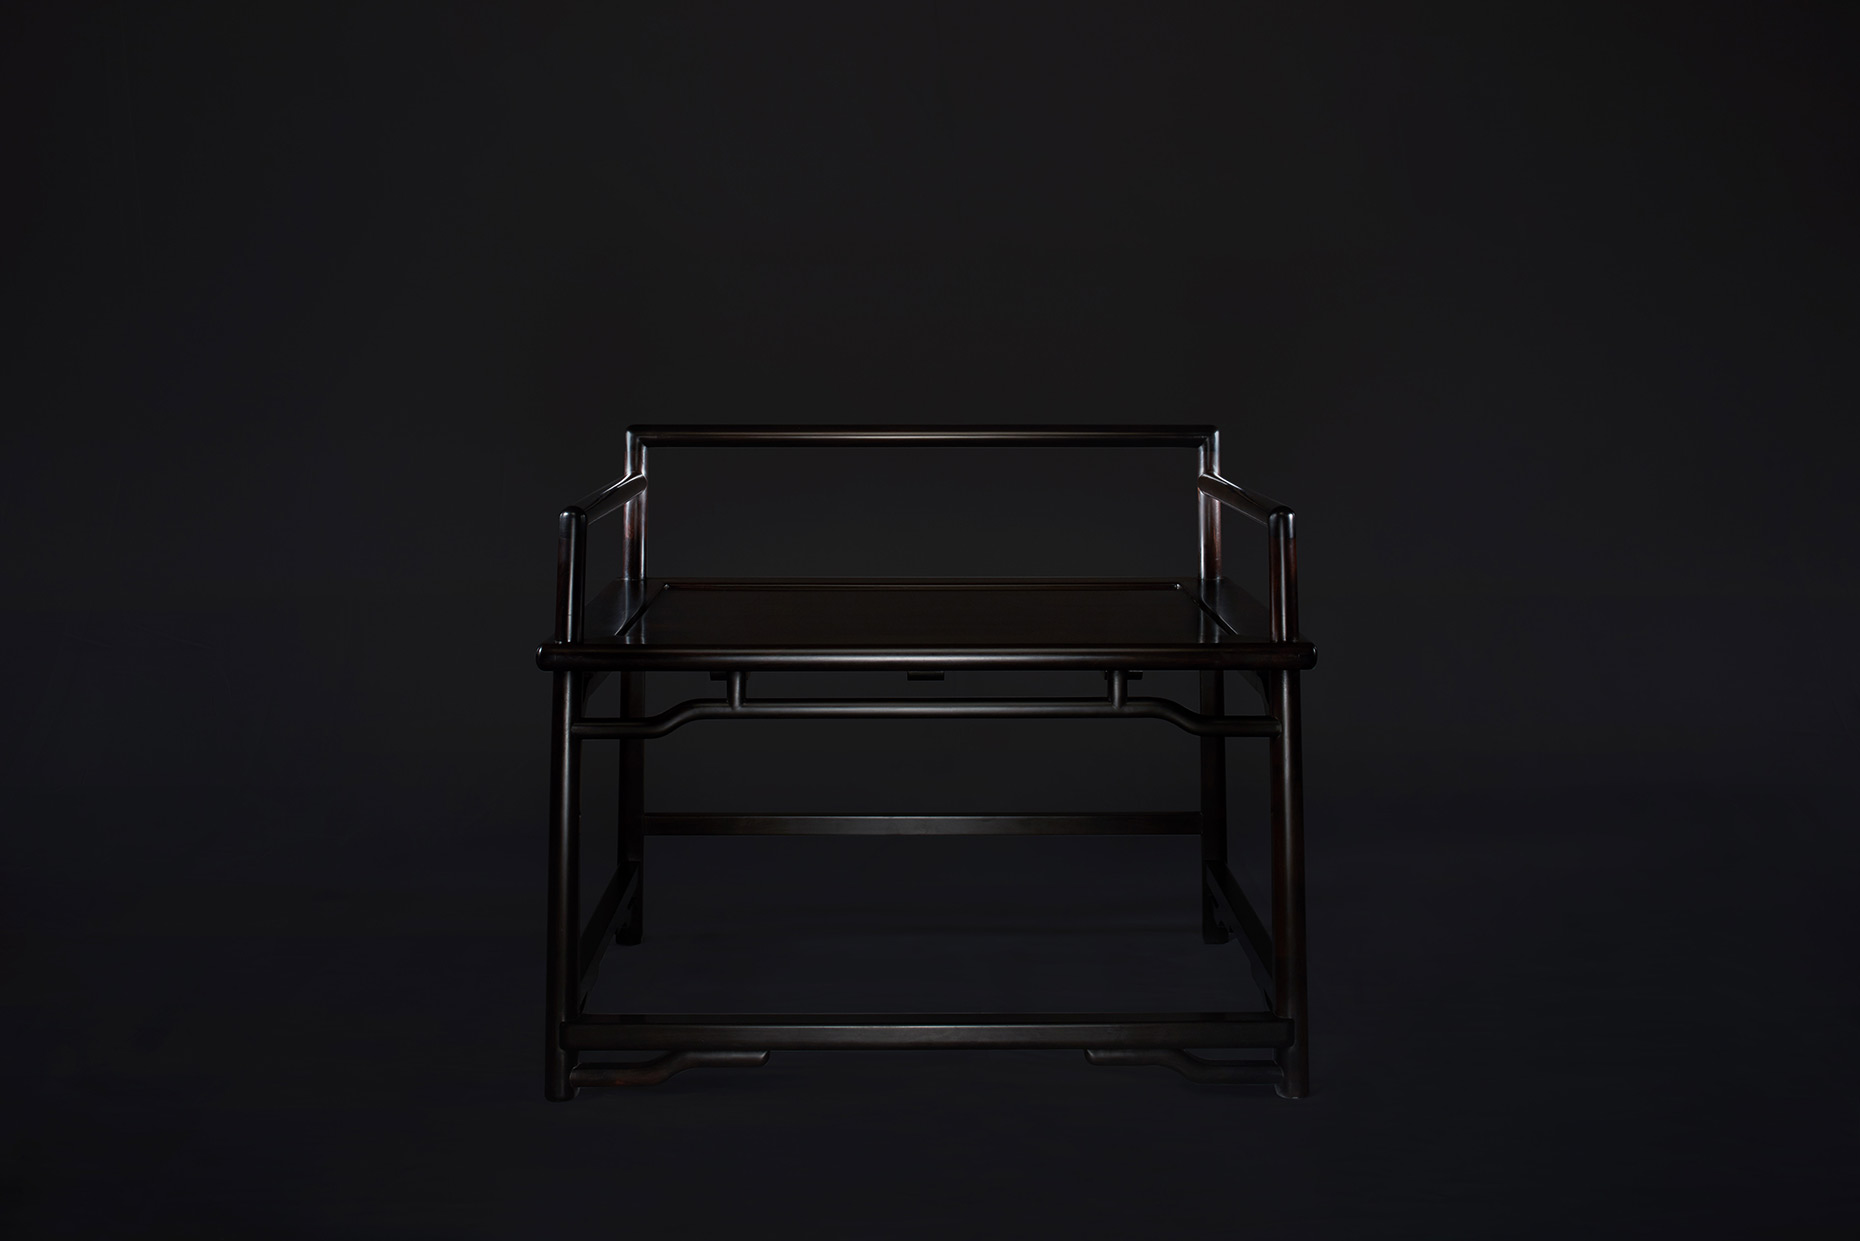 Rong Ding Xuan Furniture Campaign by Photographer Stefen Chow |  Furniture | Bespoke  | Wood | Stefen Chow | Hand Crafted | Product Photography | BeijingRong Ding Xuan |  Furniture | Bespoke  | Wood | Stefen Chow | Hand Crafted | Product Photography | Beijing